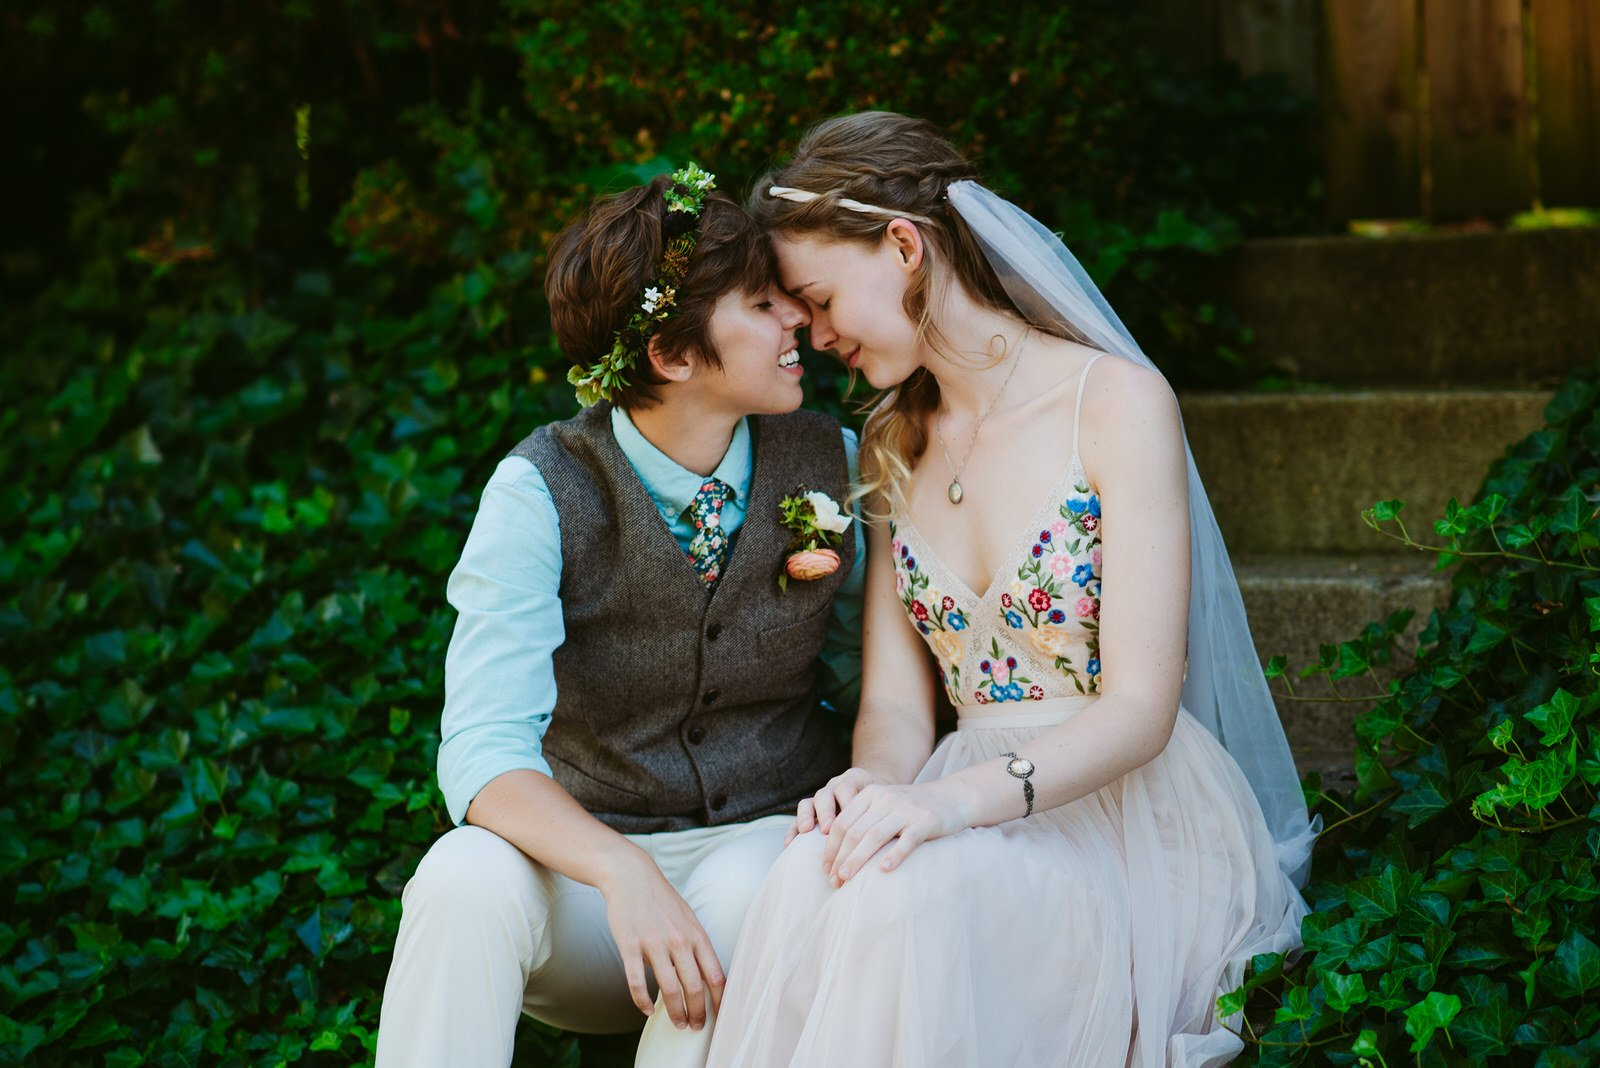 bride in suit and bride in BLDHN dress sitting on ivy covered steps touch foreheads and embrace before wedding